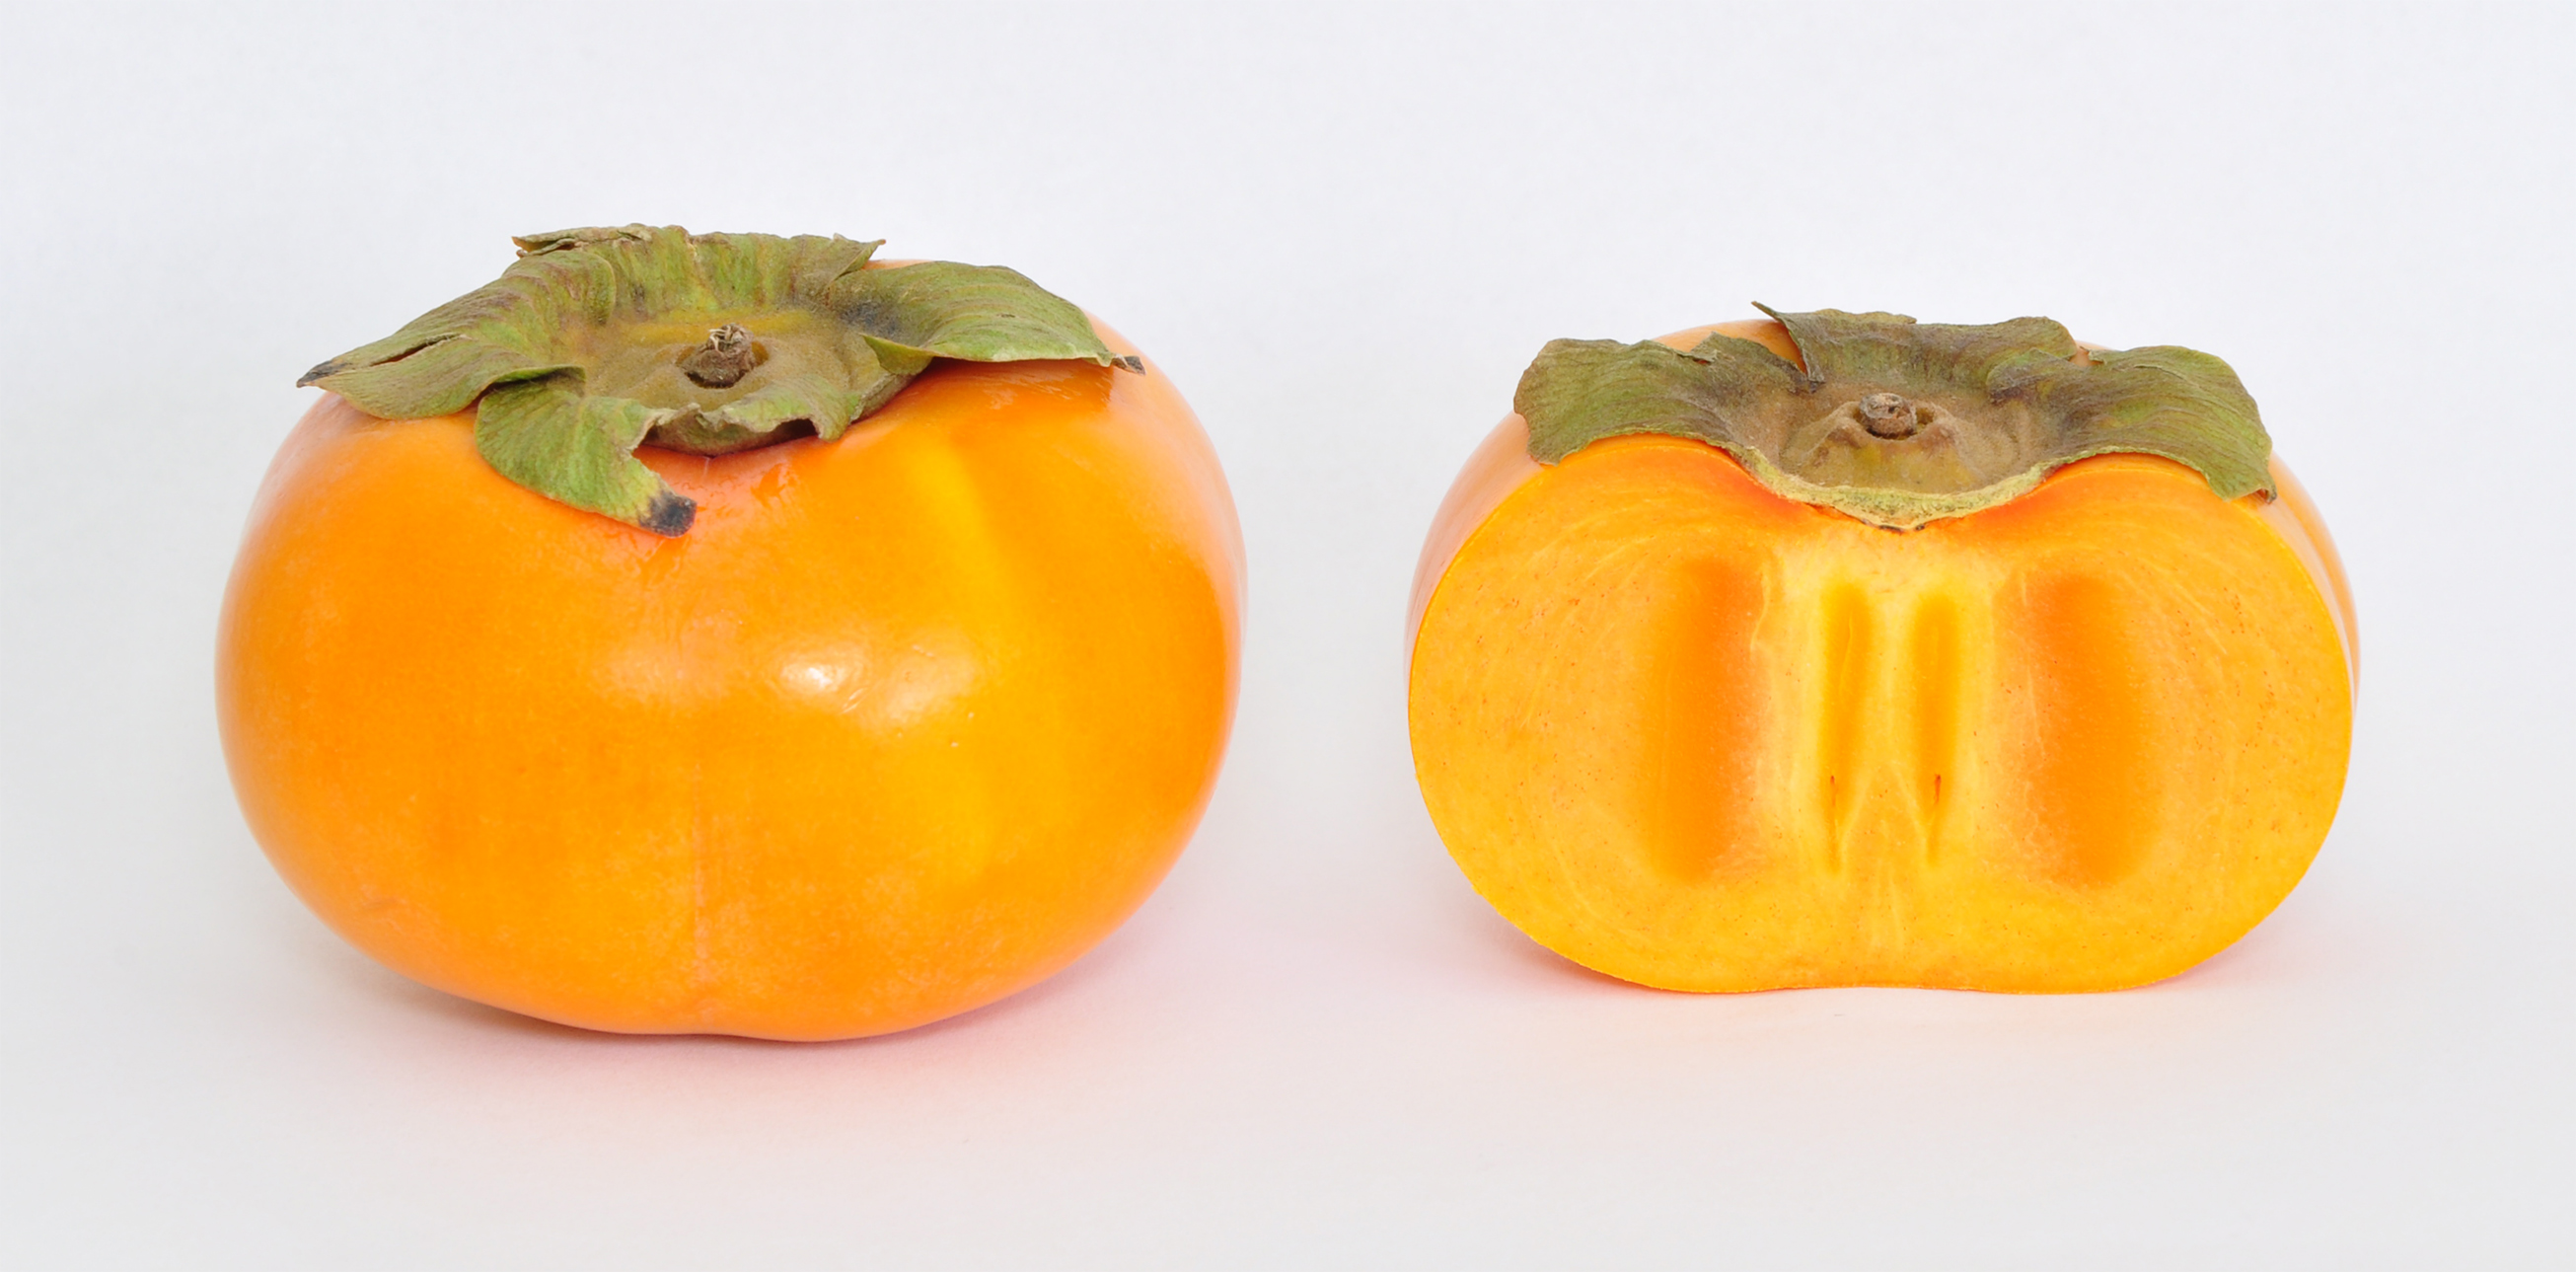 https://upload.wikimedia.org/wikipedia/commons/a/a6/Fuyu_Persimmon_(Diospyros_Kaki).jpg